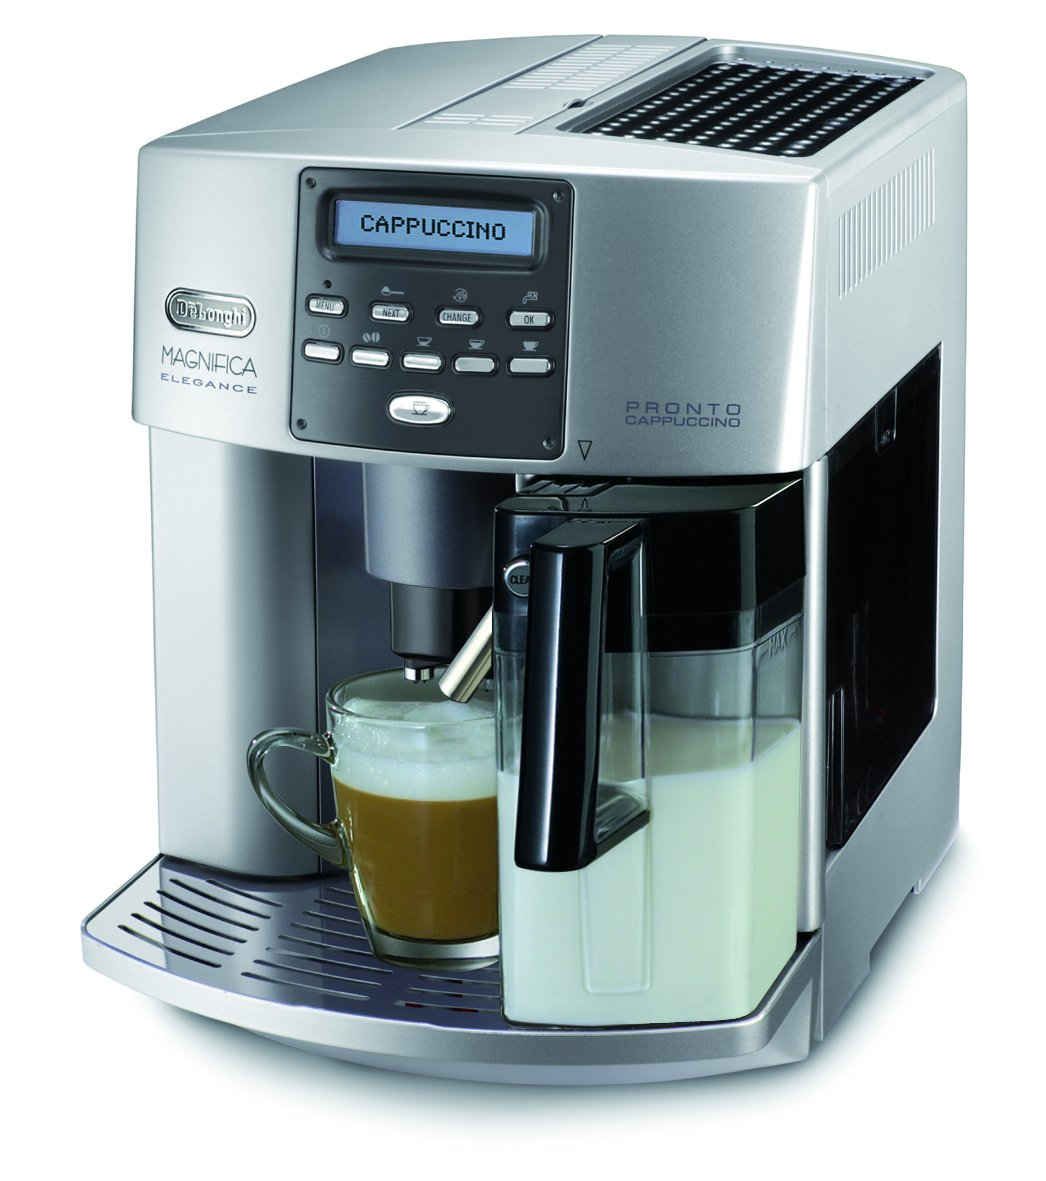 Electronic Test Cases For Coffee Machine delonghi ecam22 360 s fully automatic bean to cup coffee machine magnifica machine